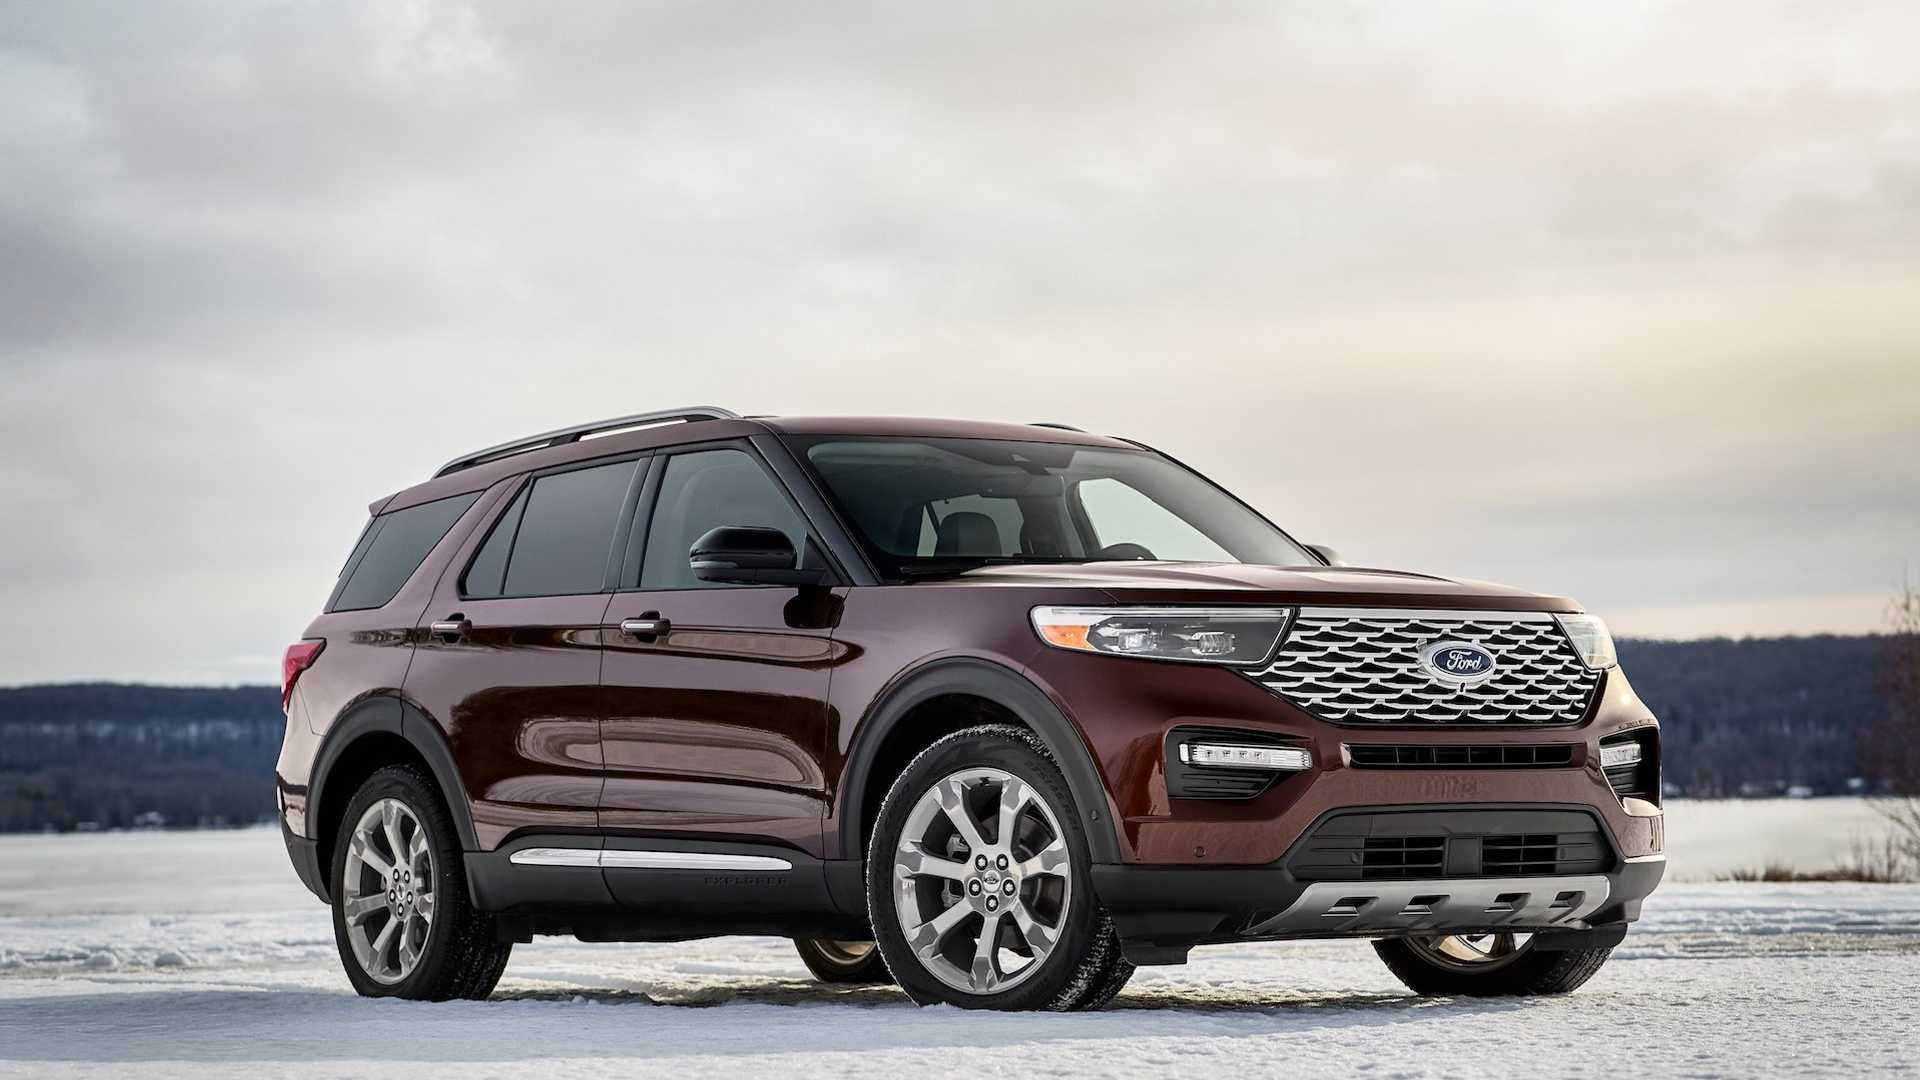 2020 Ford Explorer: America's Best-Selling SUV Reinvented - autoevolution